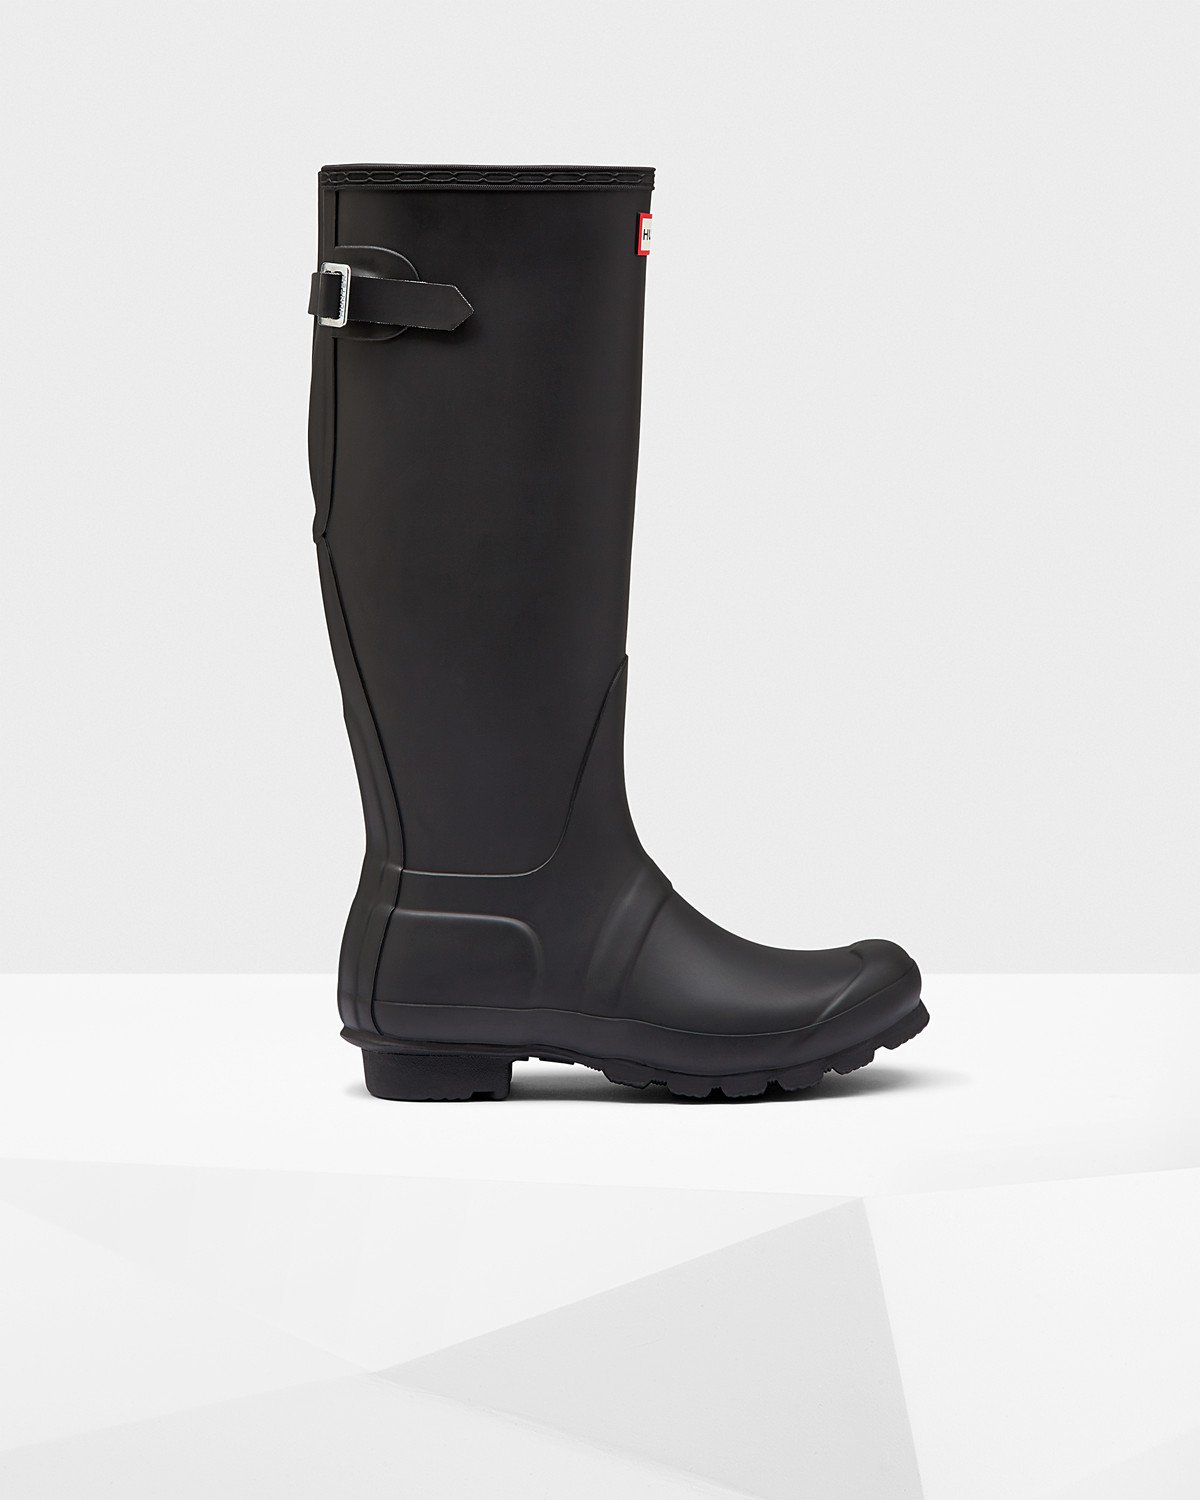 Women's Original Tall Back Adjustable Rain Boots